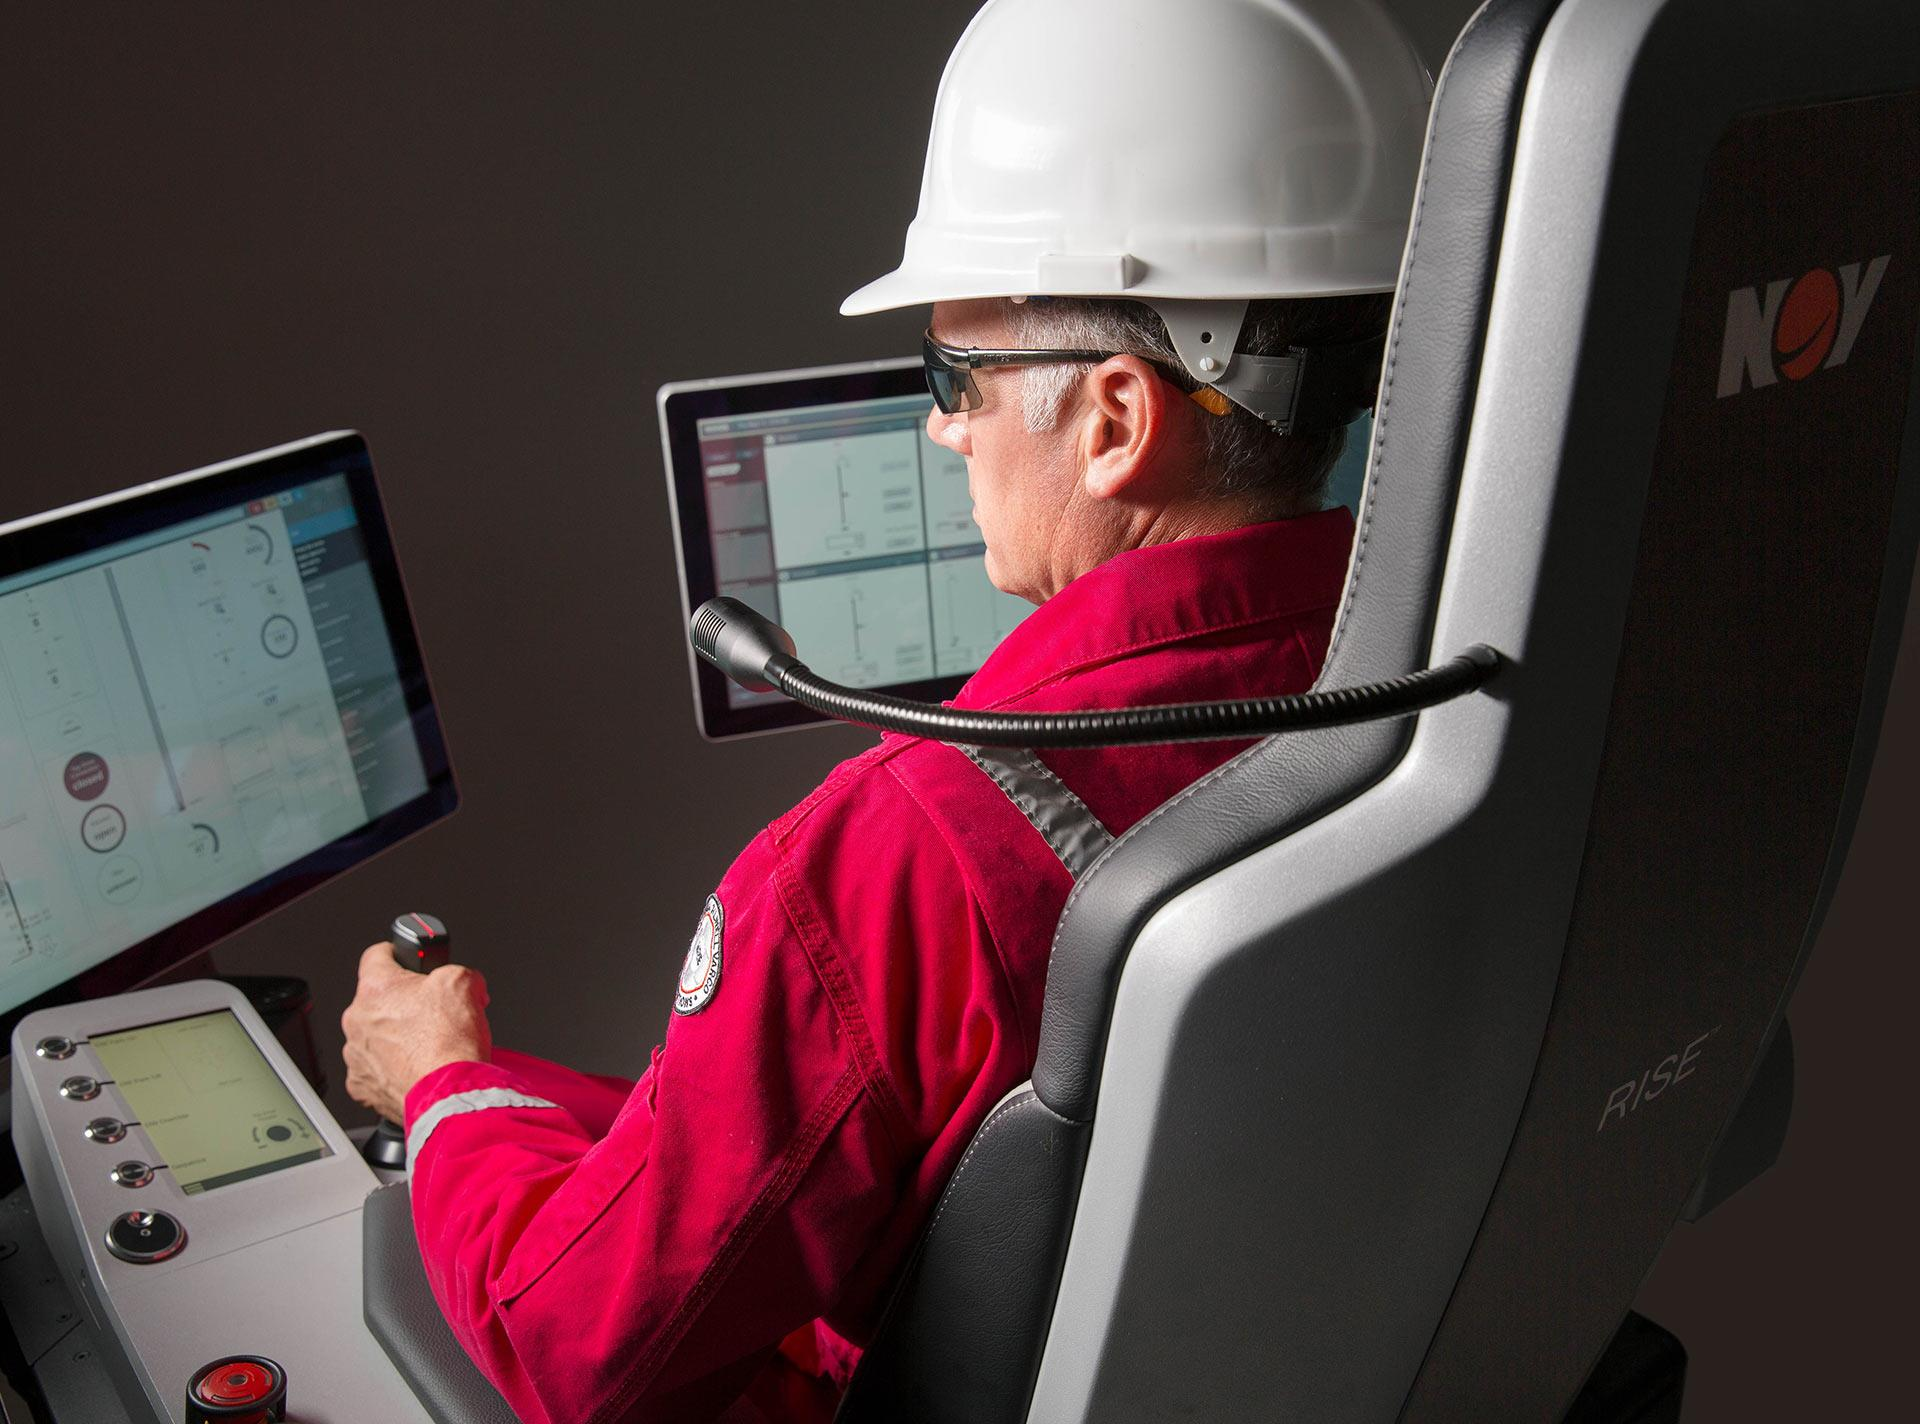 NOV RISE drilling rig workstation with ergonomic functionality